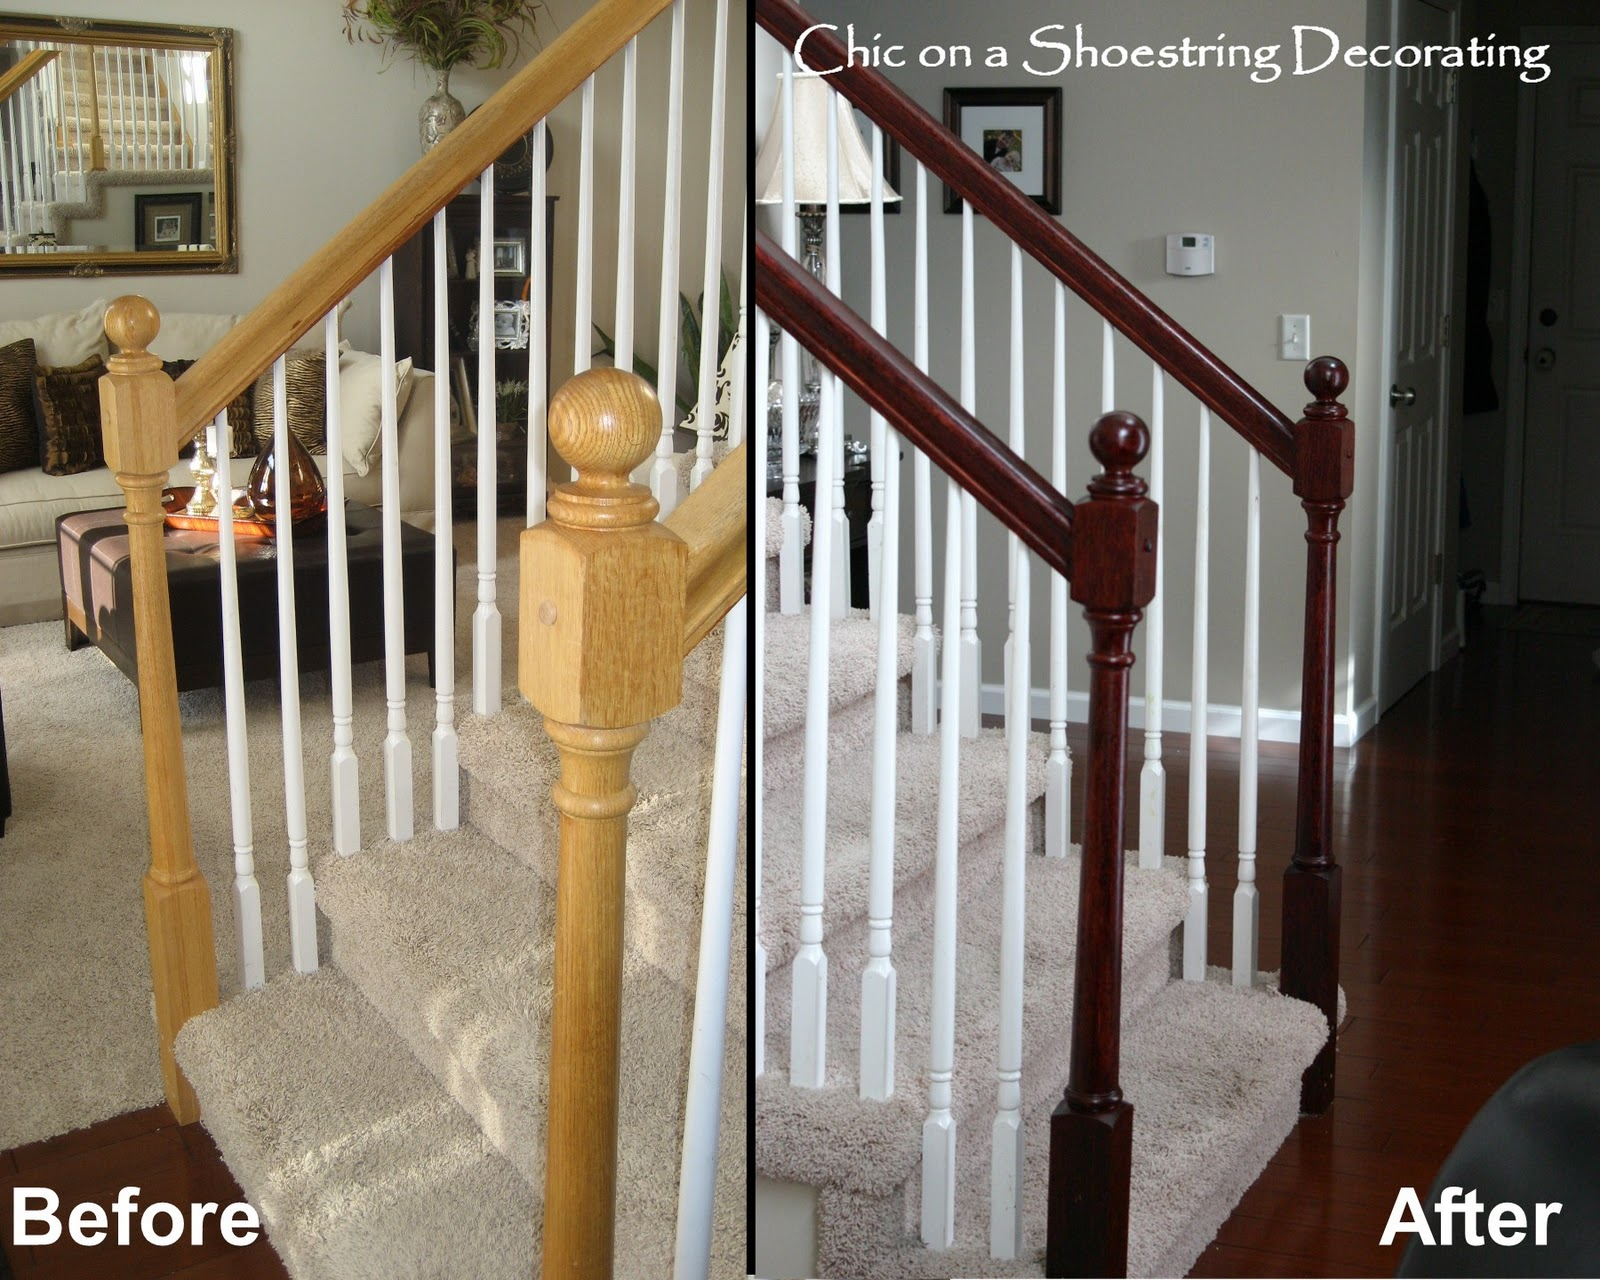 Chic On A Shoestring Decorating How To Stain Stair Railings And | Cost To Restain Stair Railing | Spindles | Refinishing Hardwood Stairs | Baluster | Sanding | Paint